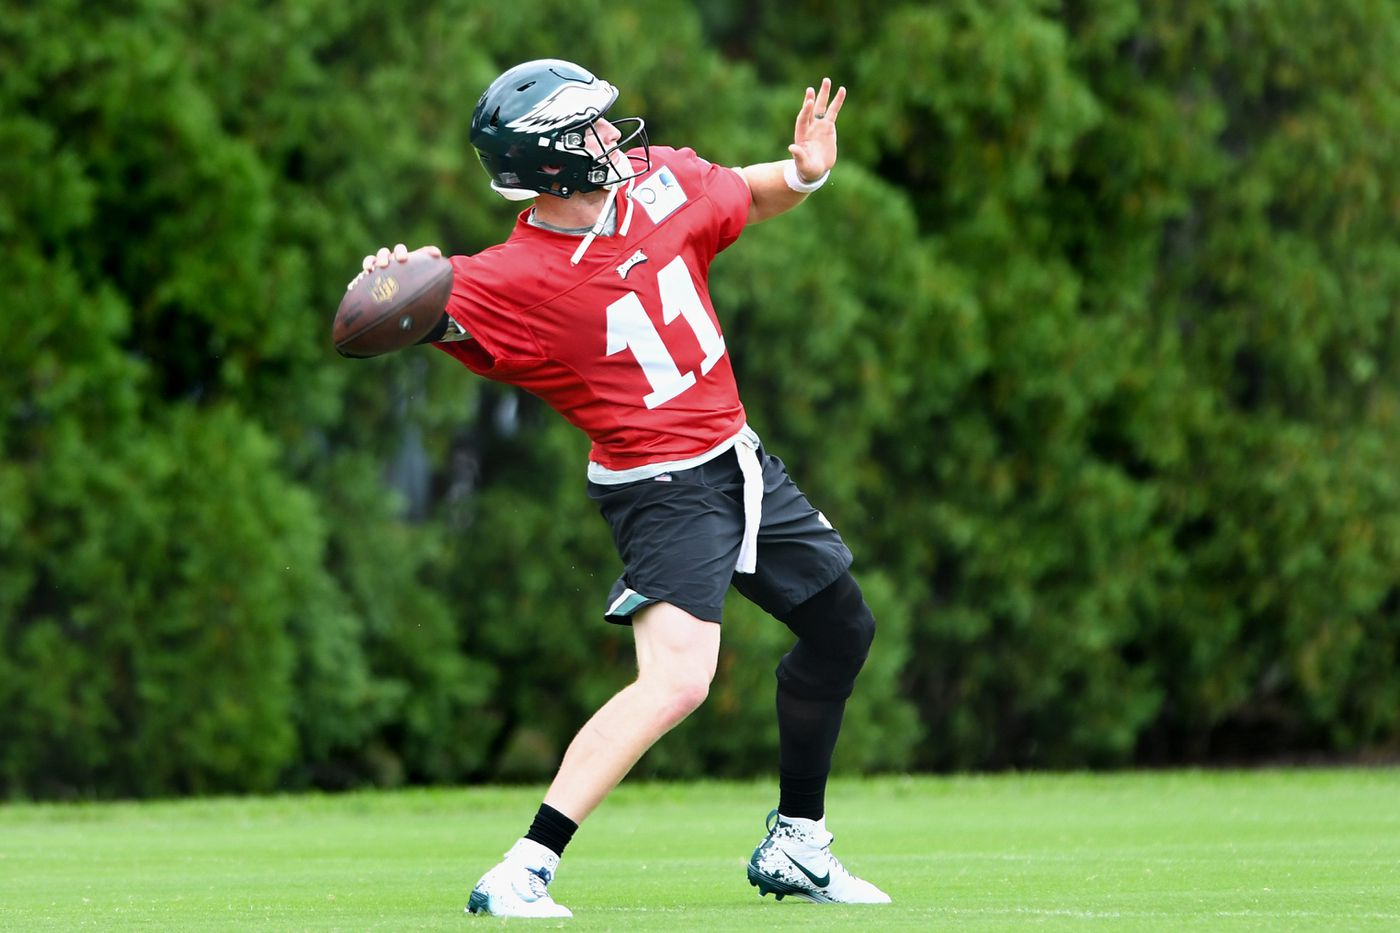 Carson Wentz's comeback is complete and the headstrong Eagles QB is already on to his next challenge